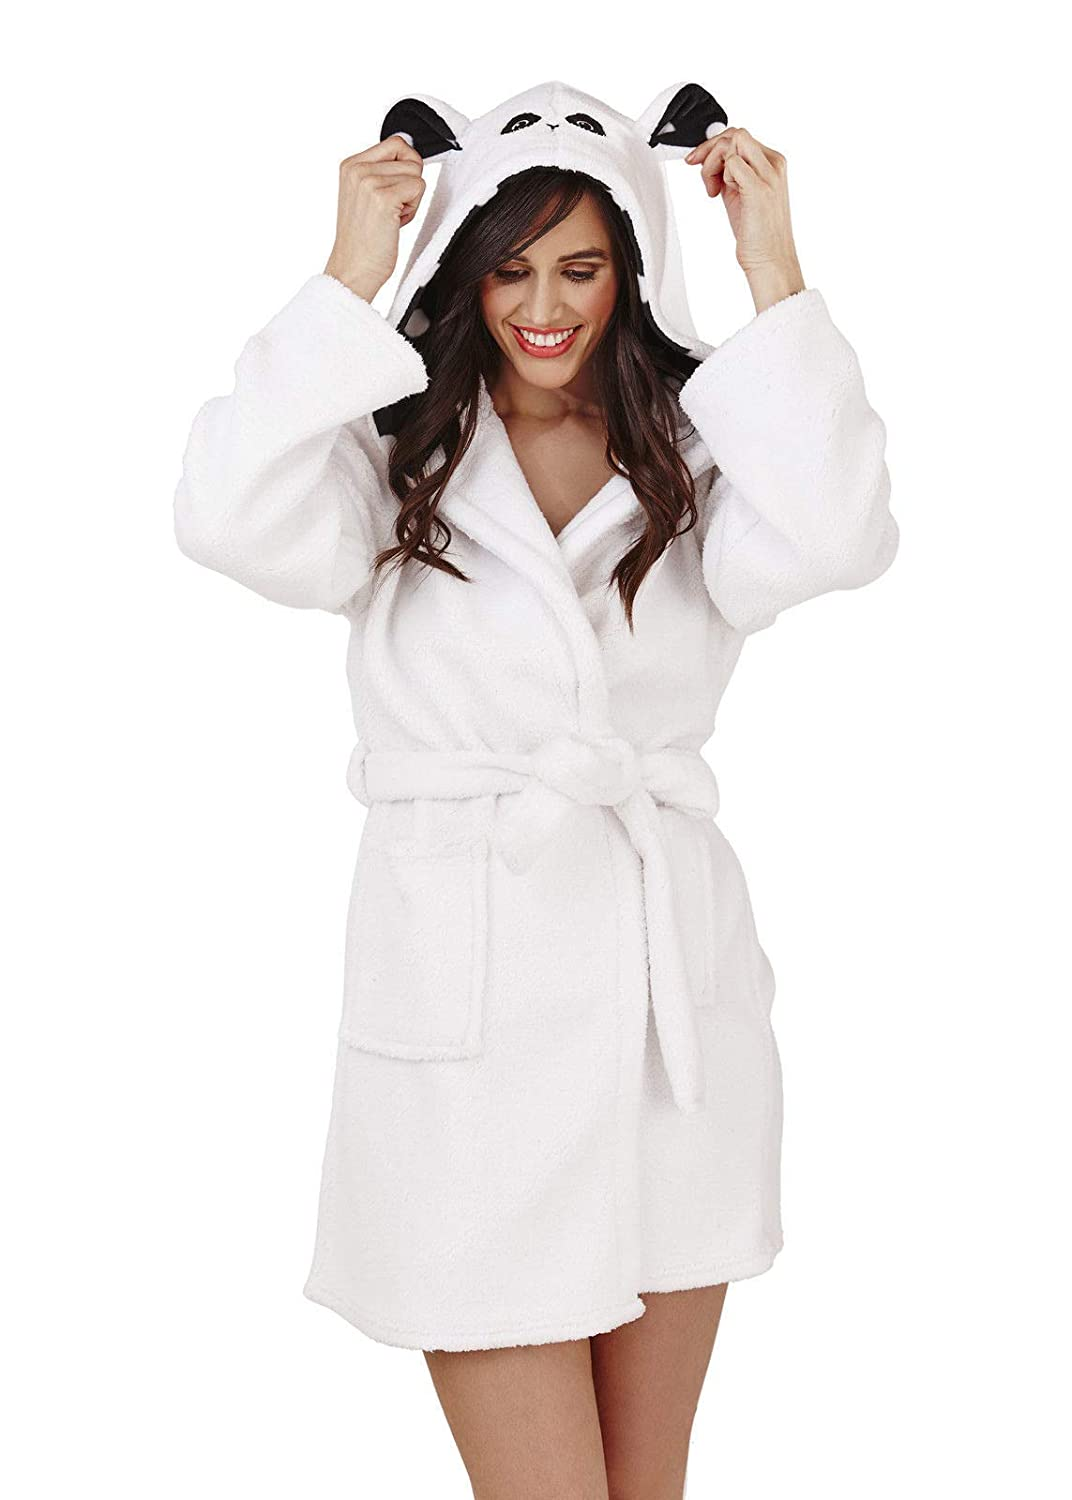 Loungeable, Ladies Luxury Hooded Novelty Fun Gift 3D Animal Robe 04731